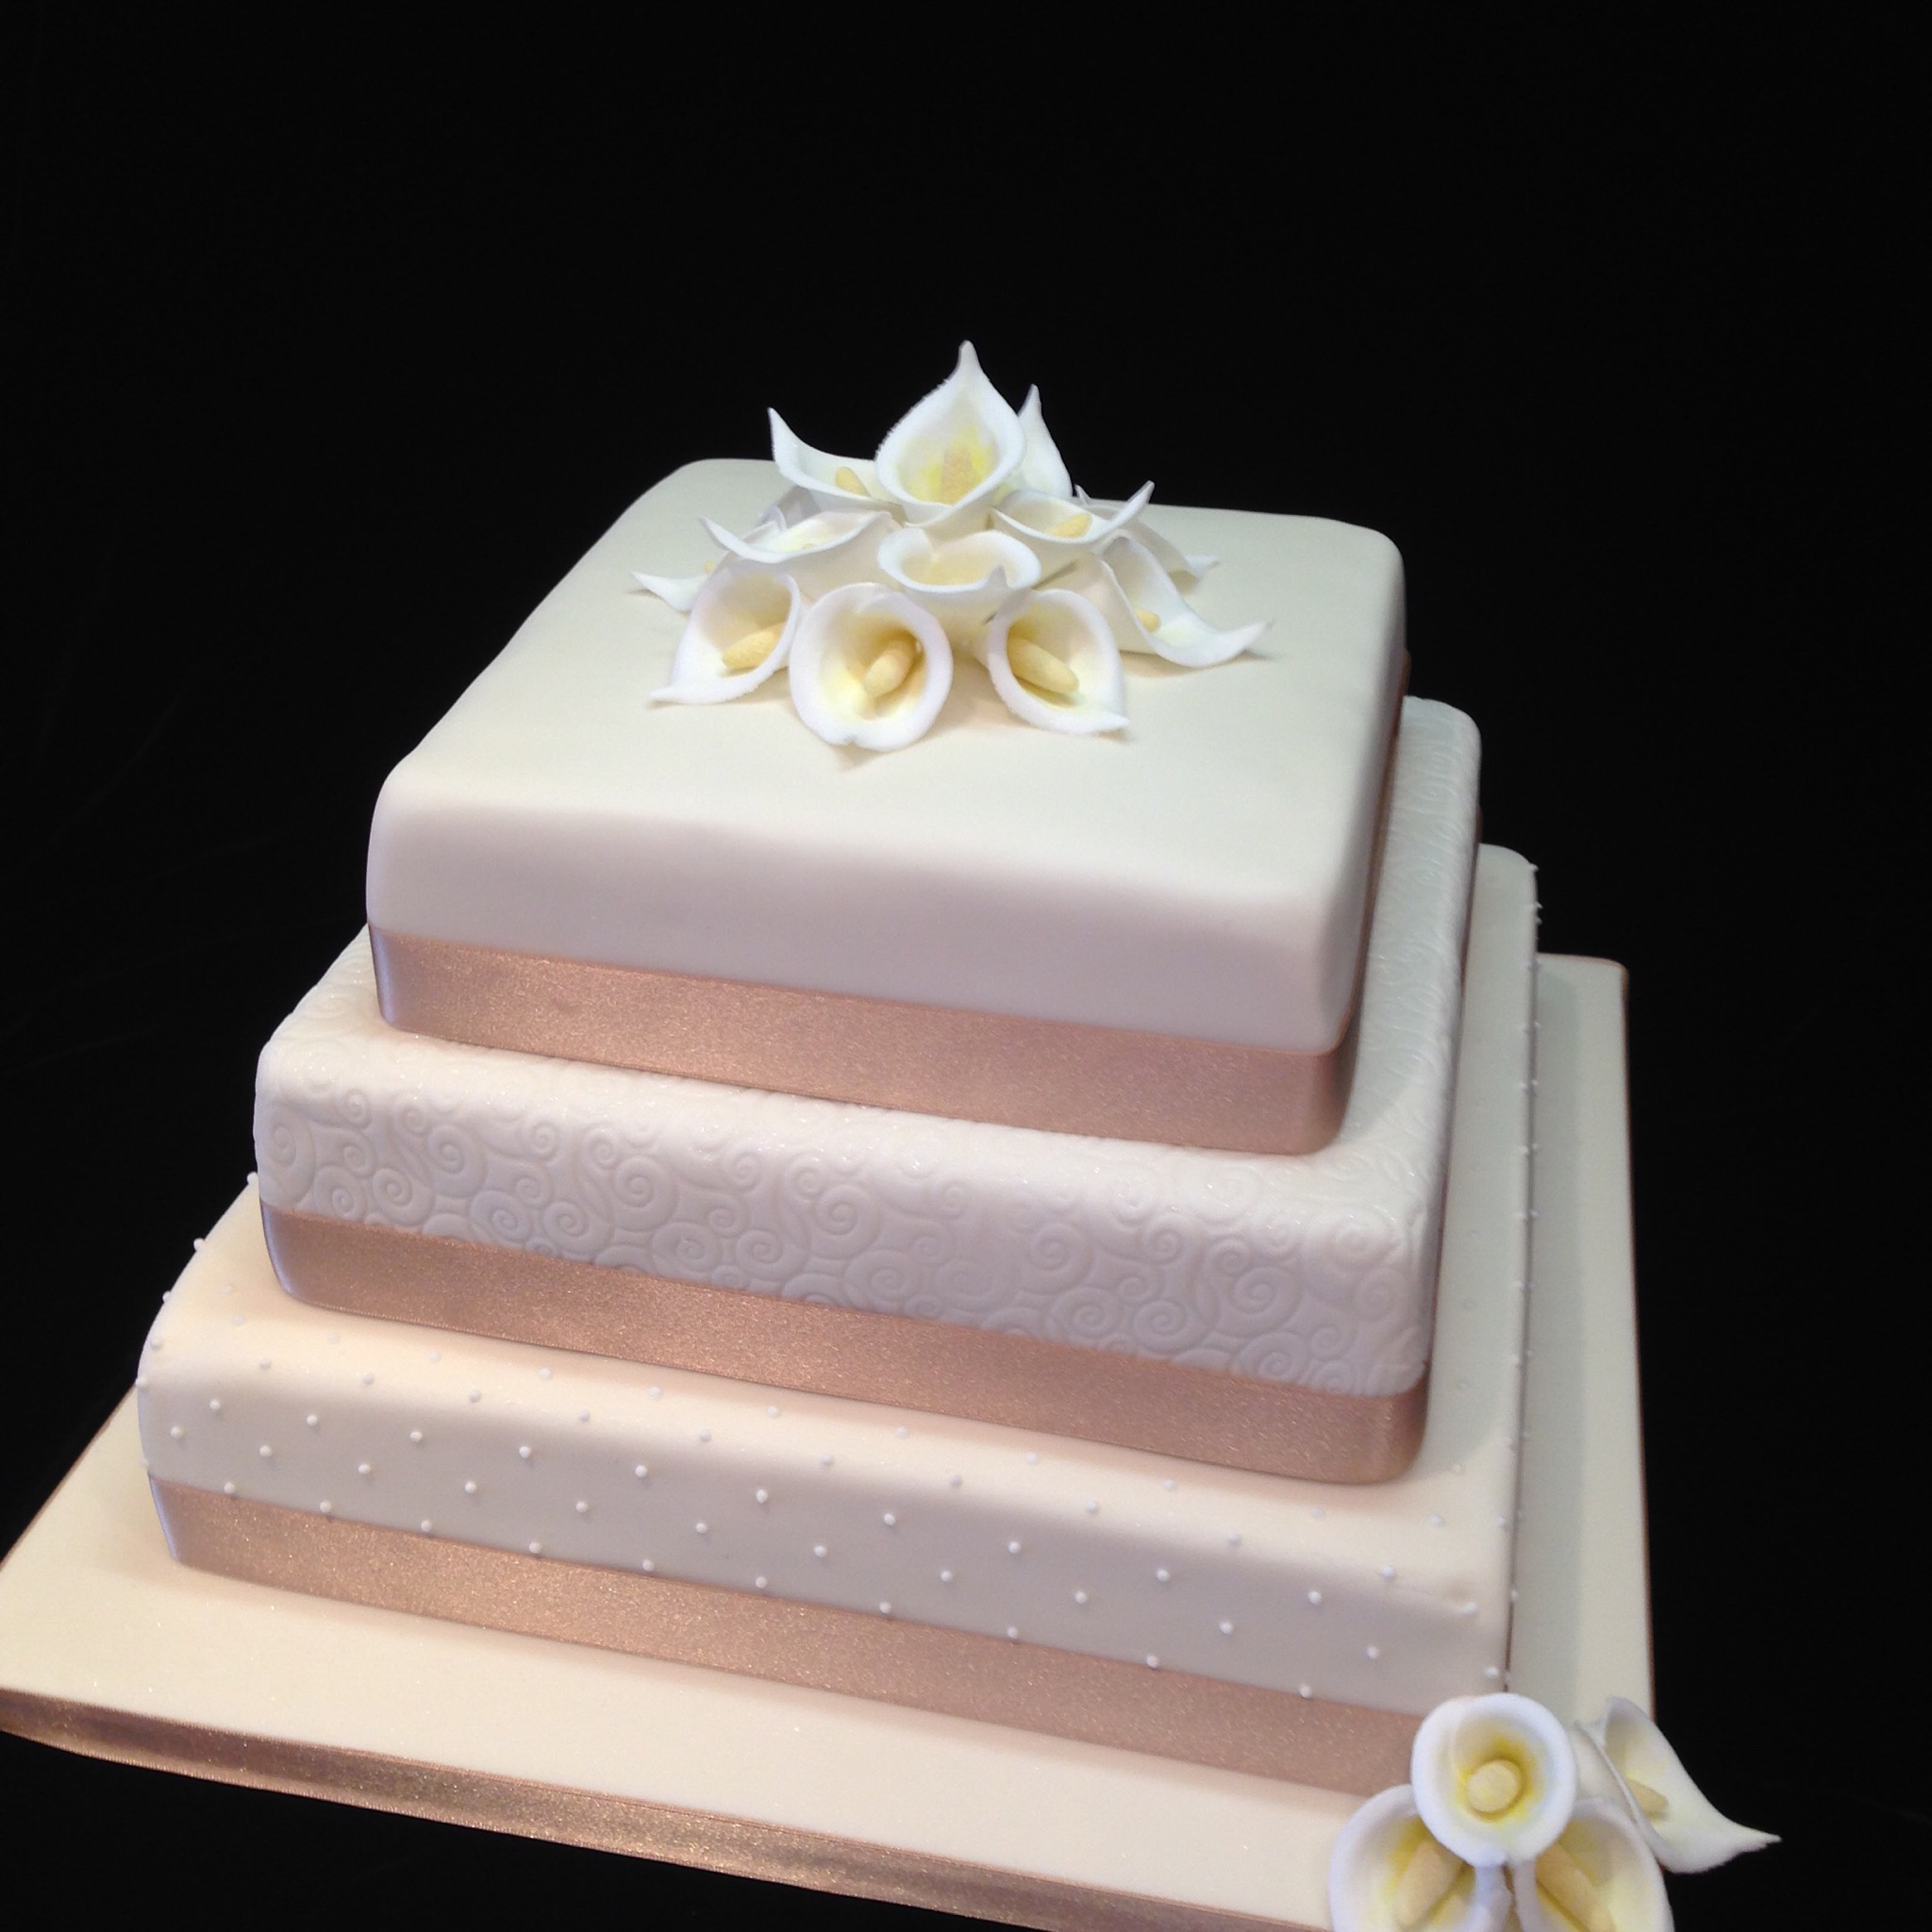 Three tiers of Red Velvet, Carrot & Lemon with a Calla Lily topper